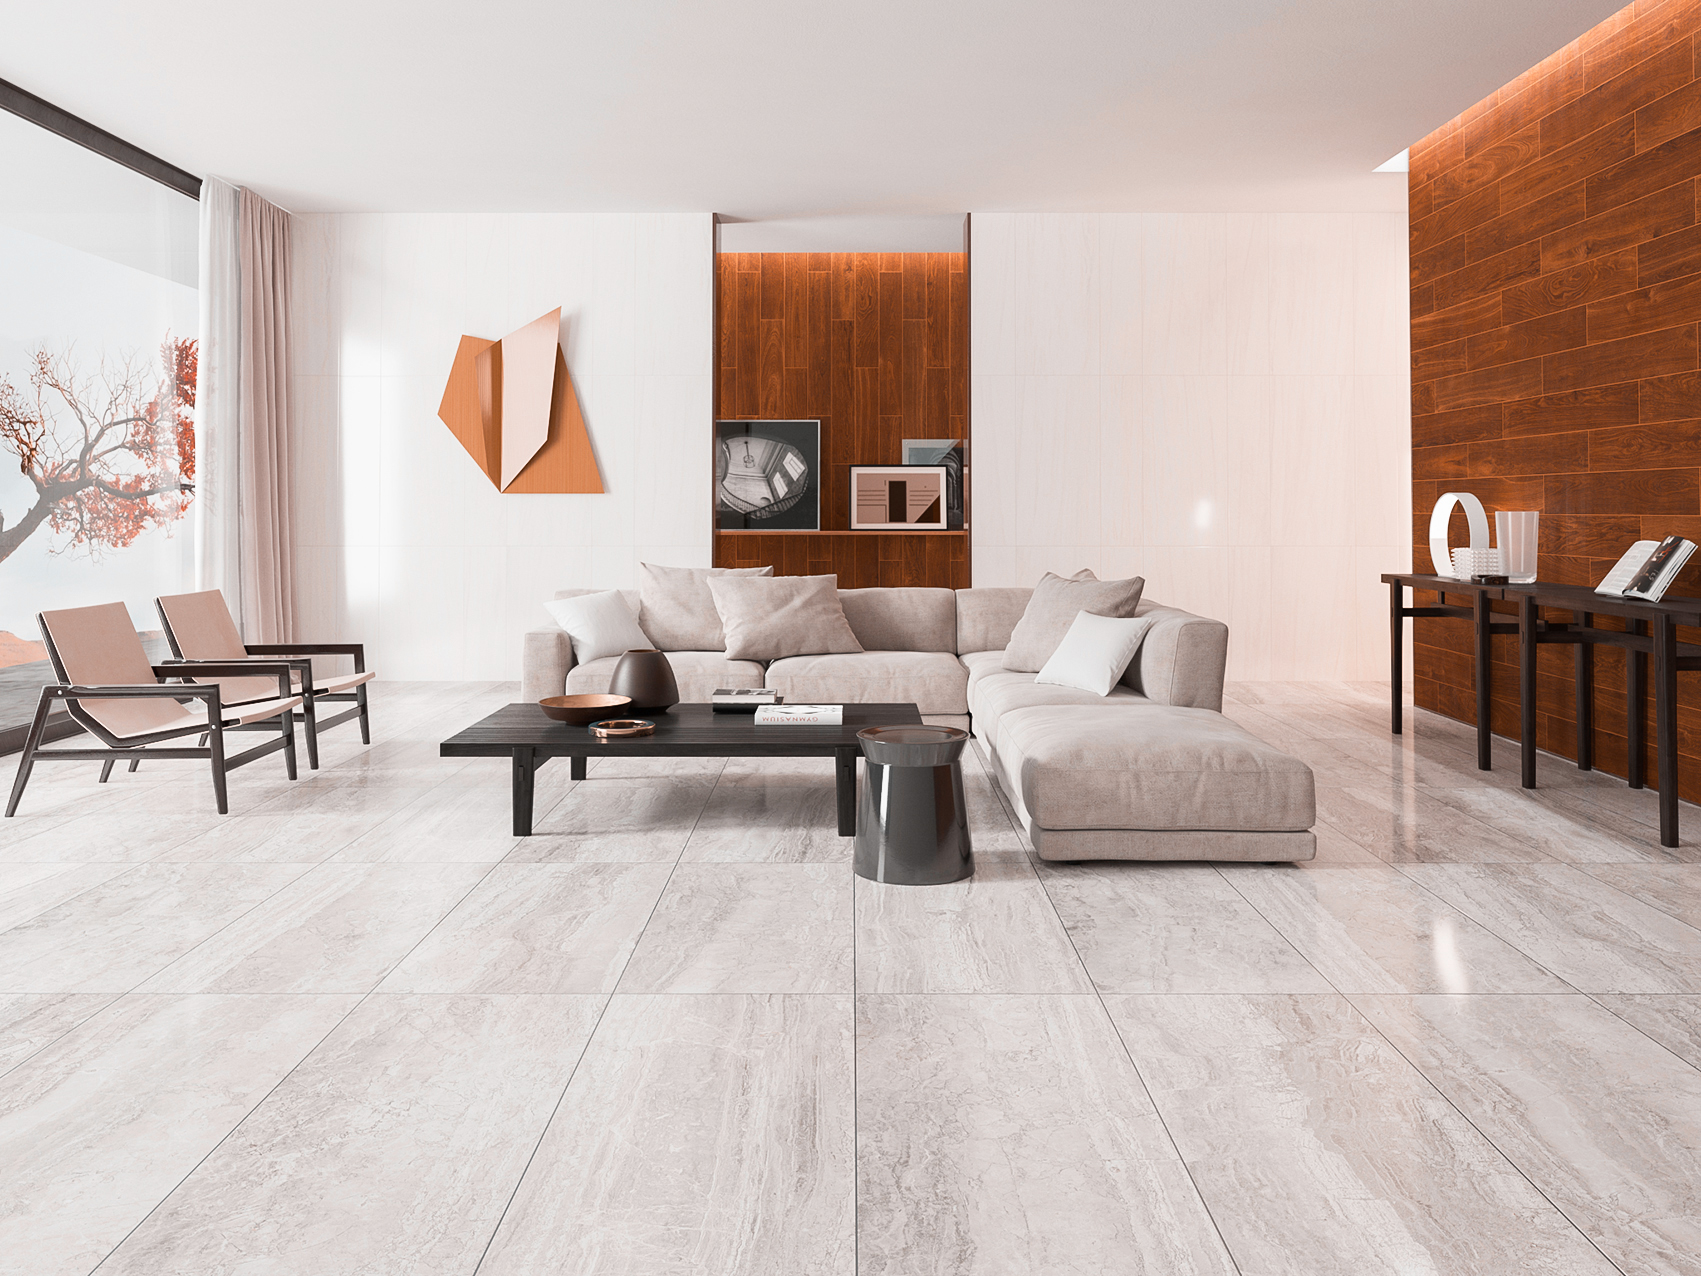 PARED TRILOGY Covelano PARED Rovere Bruno PISO TRILOGY Apuano Gray.jpg